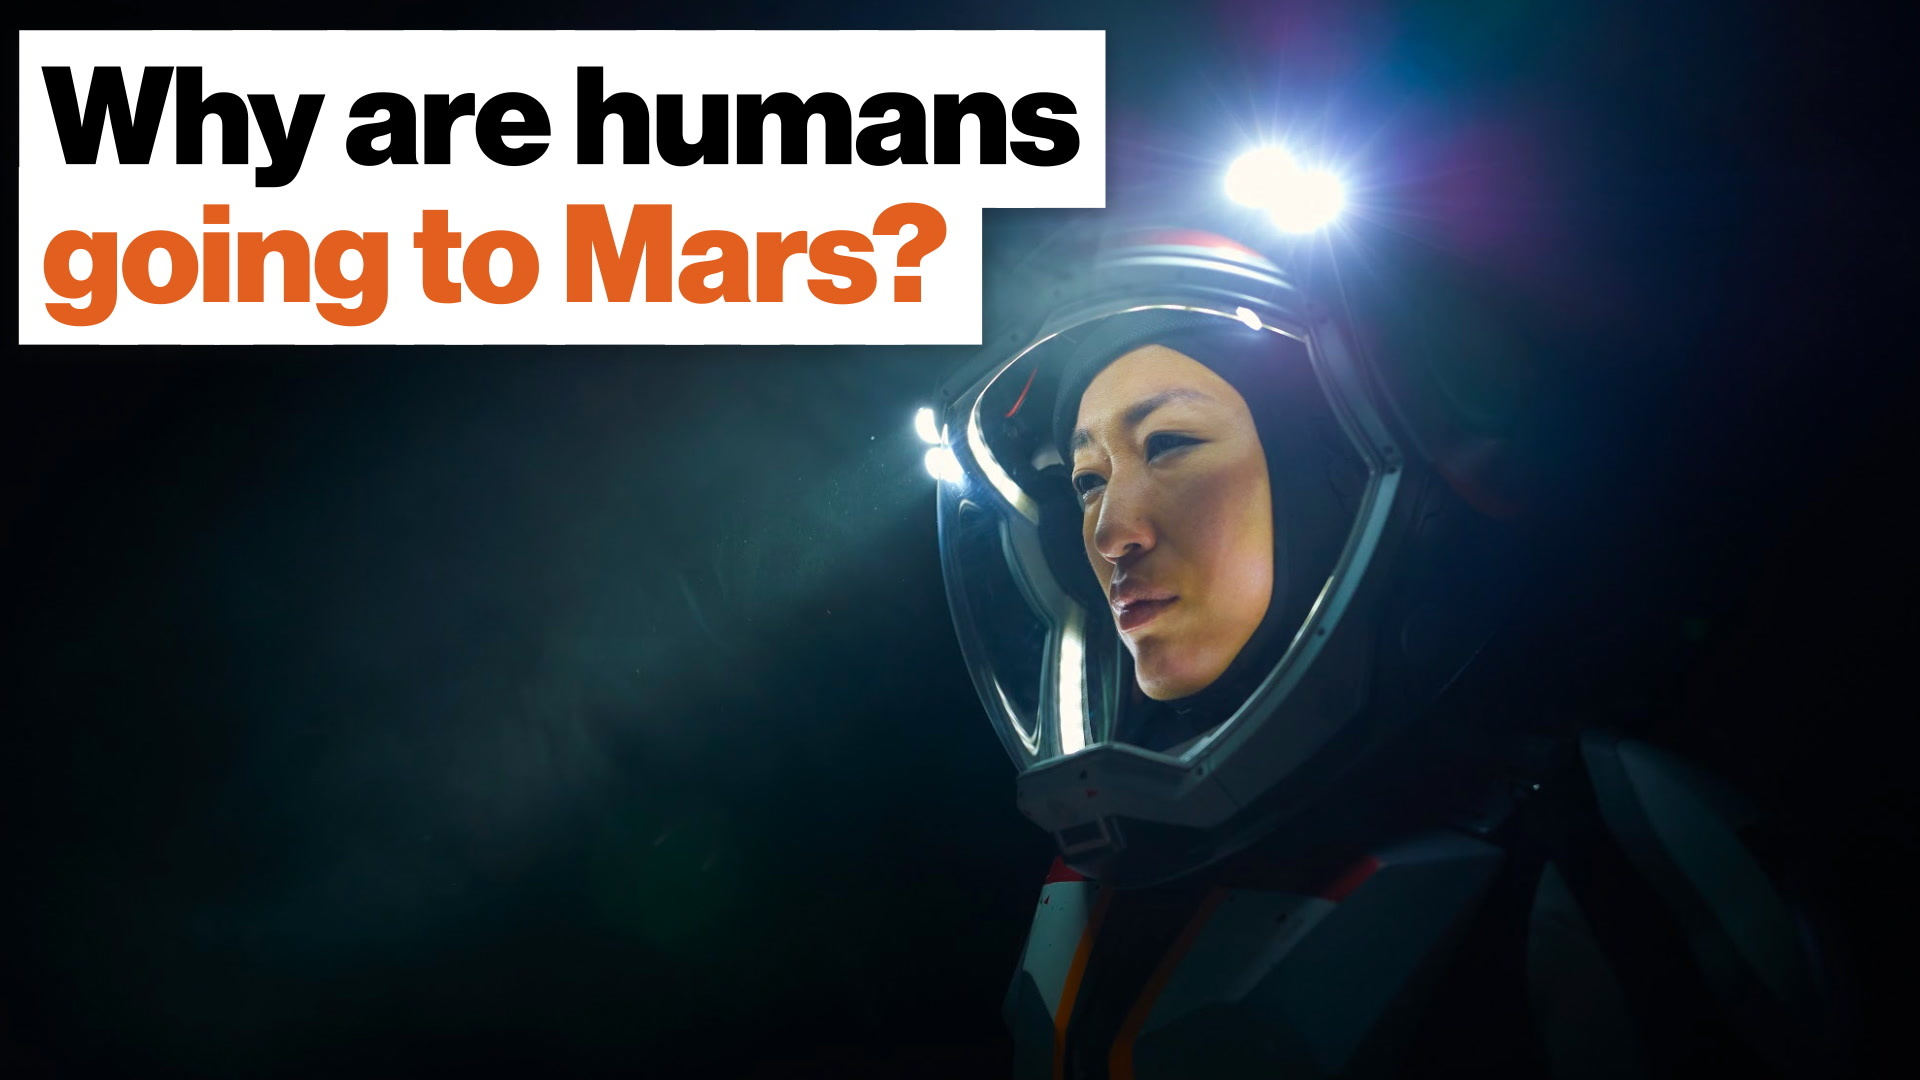 What humanity will gain by going to Mars